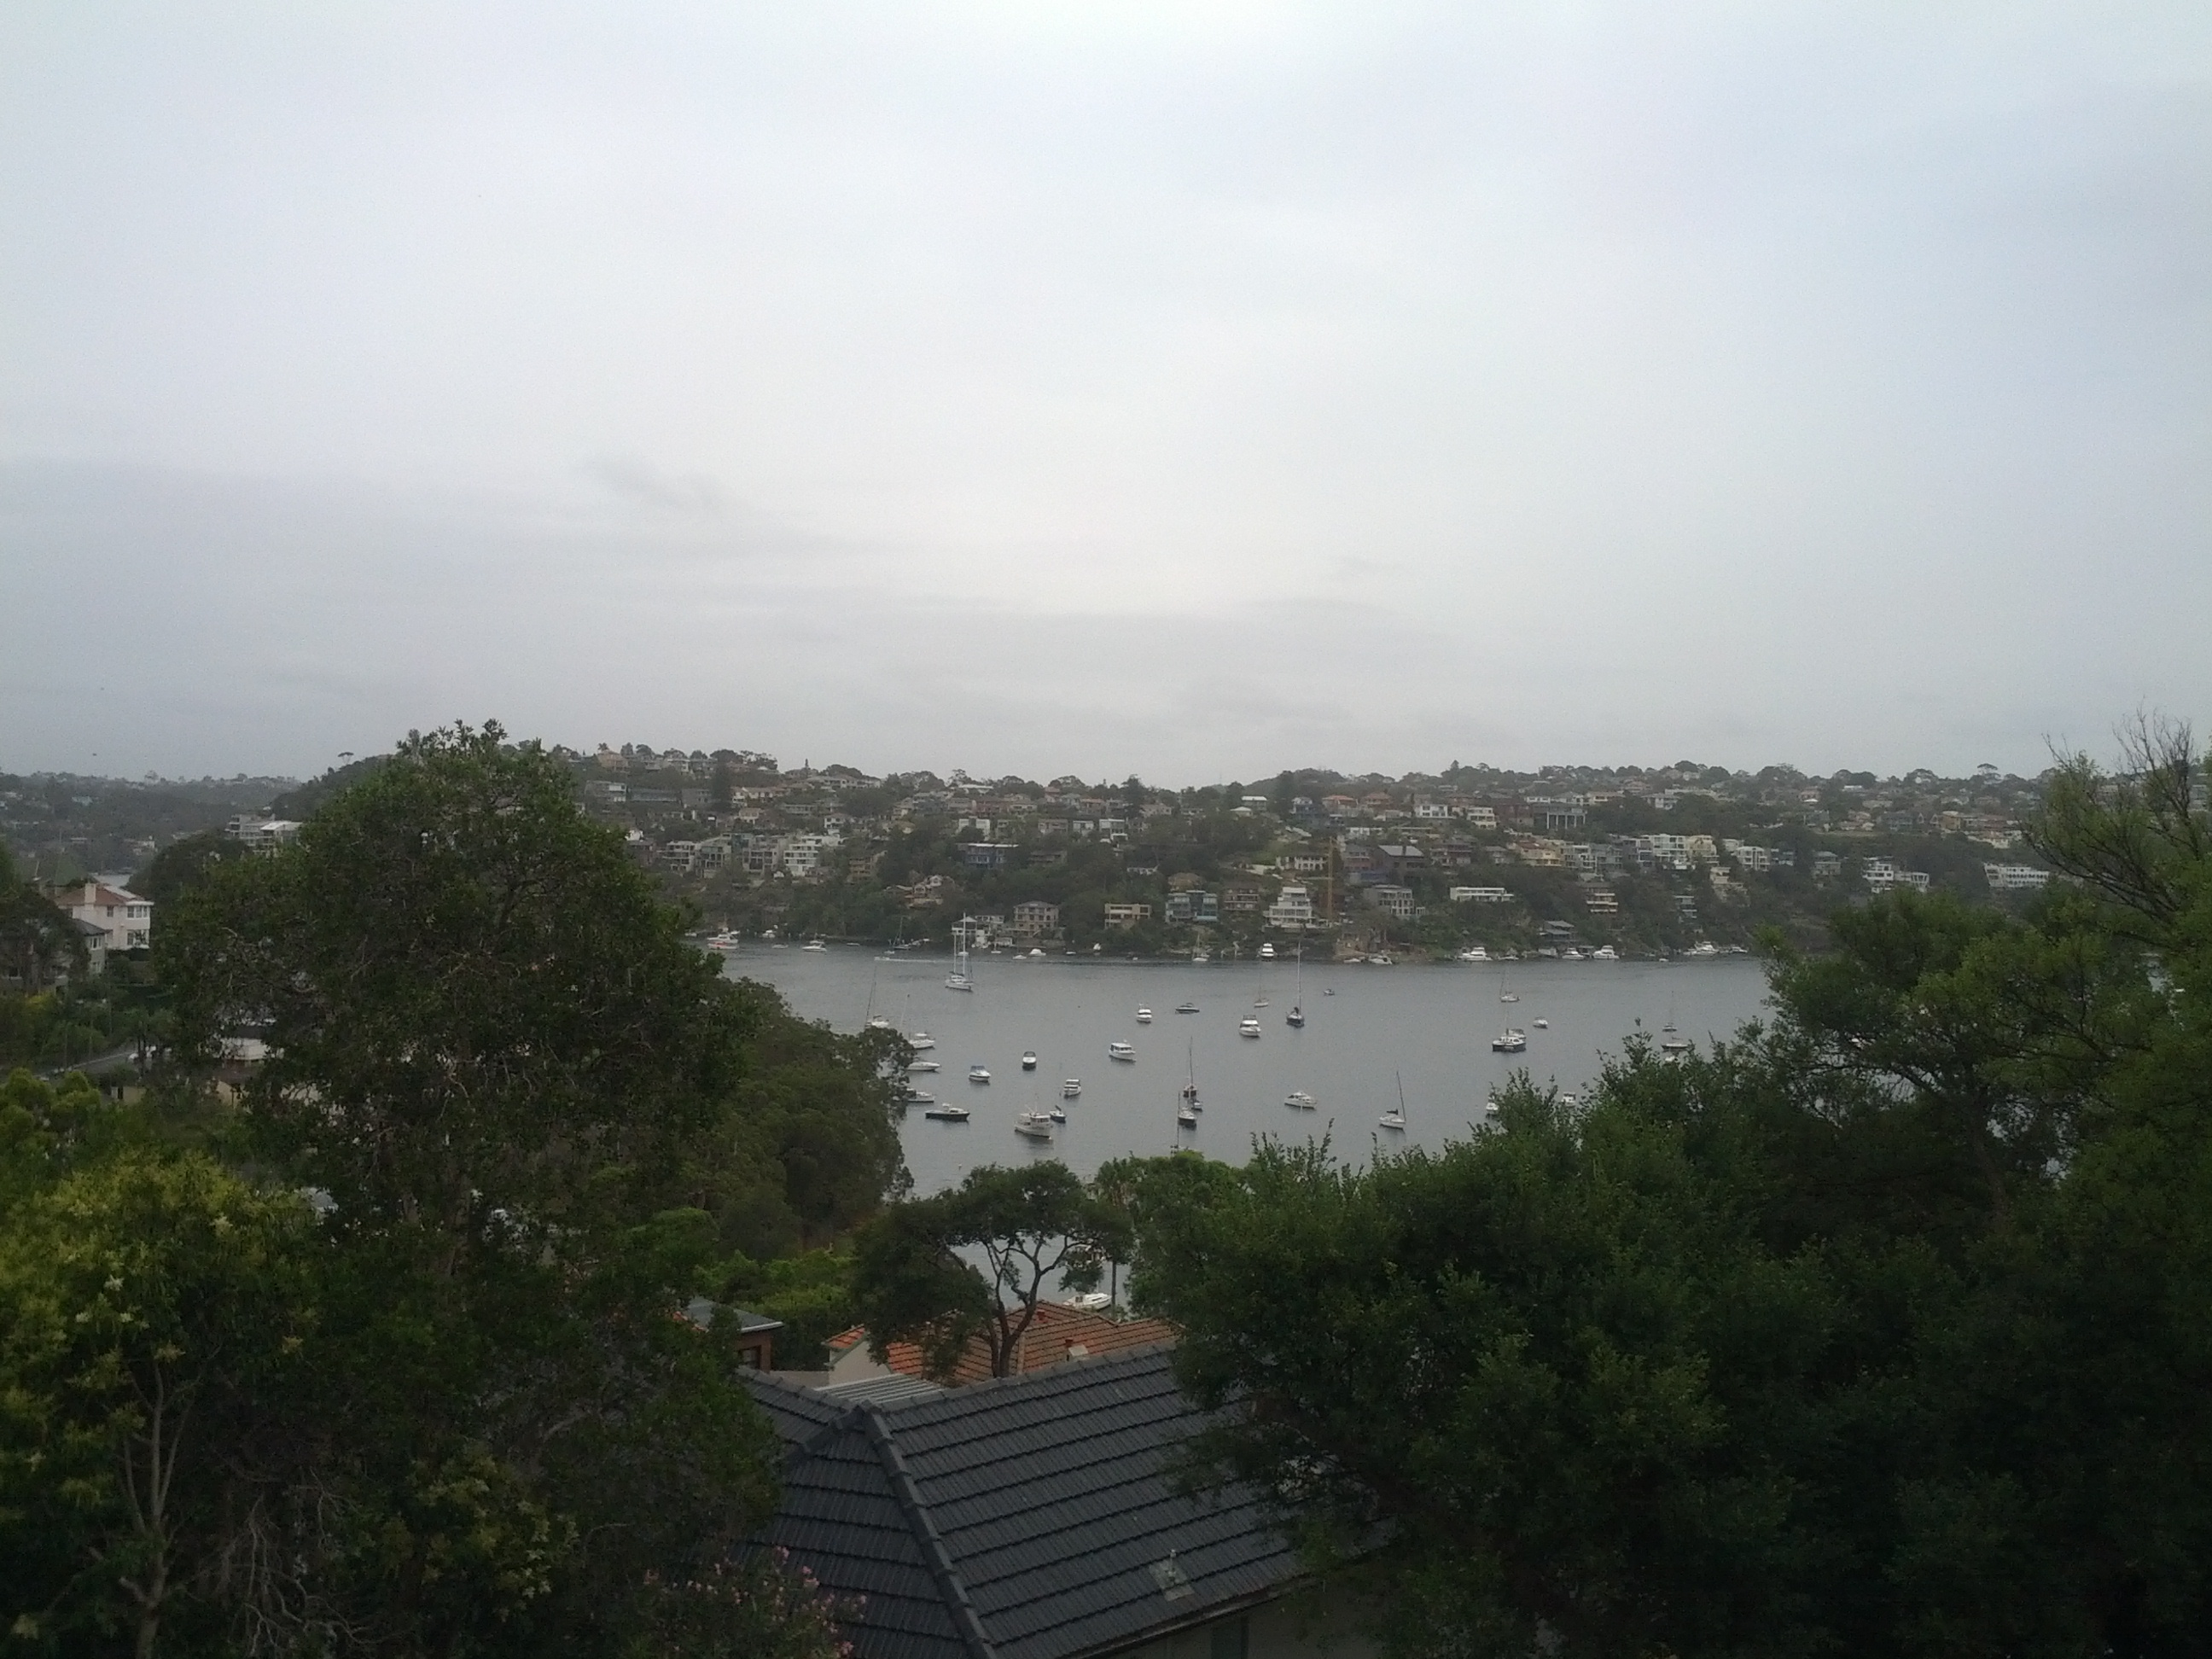 Walking down towards Spit Point Bridge. Just about every cove I see has a marina situated in it, must be almost as many boats as cars in Sydney.